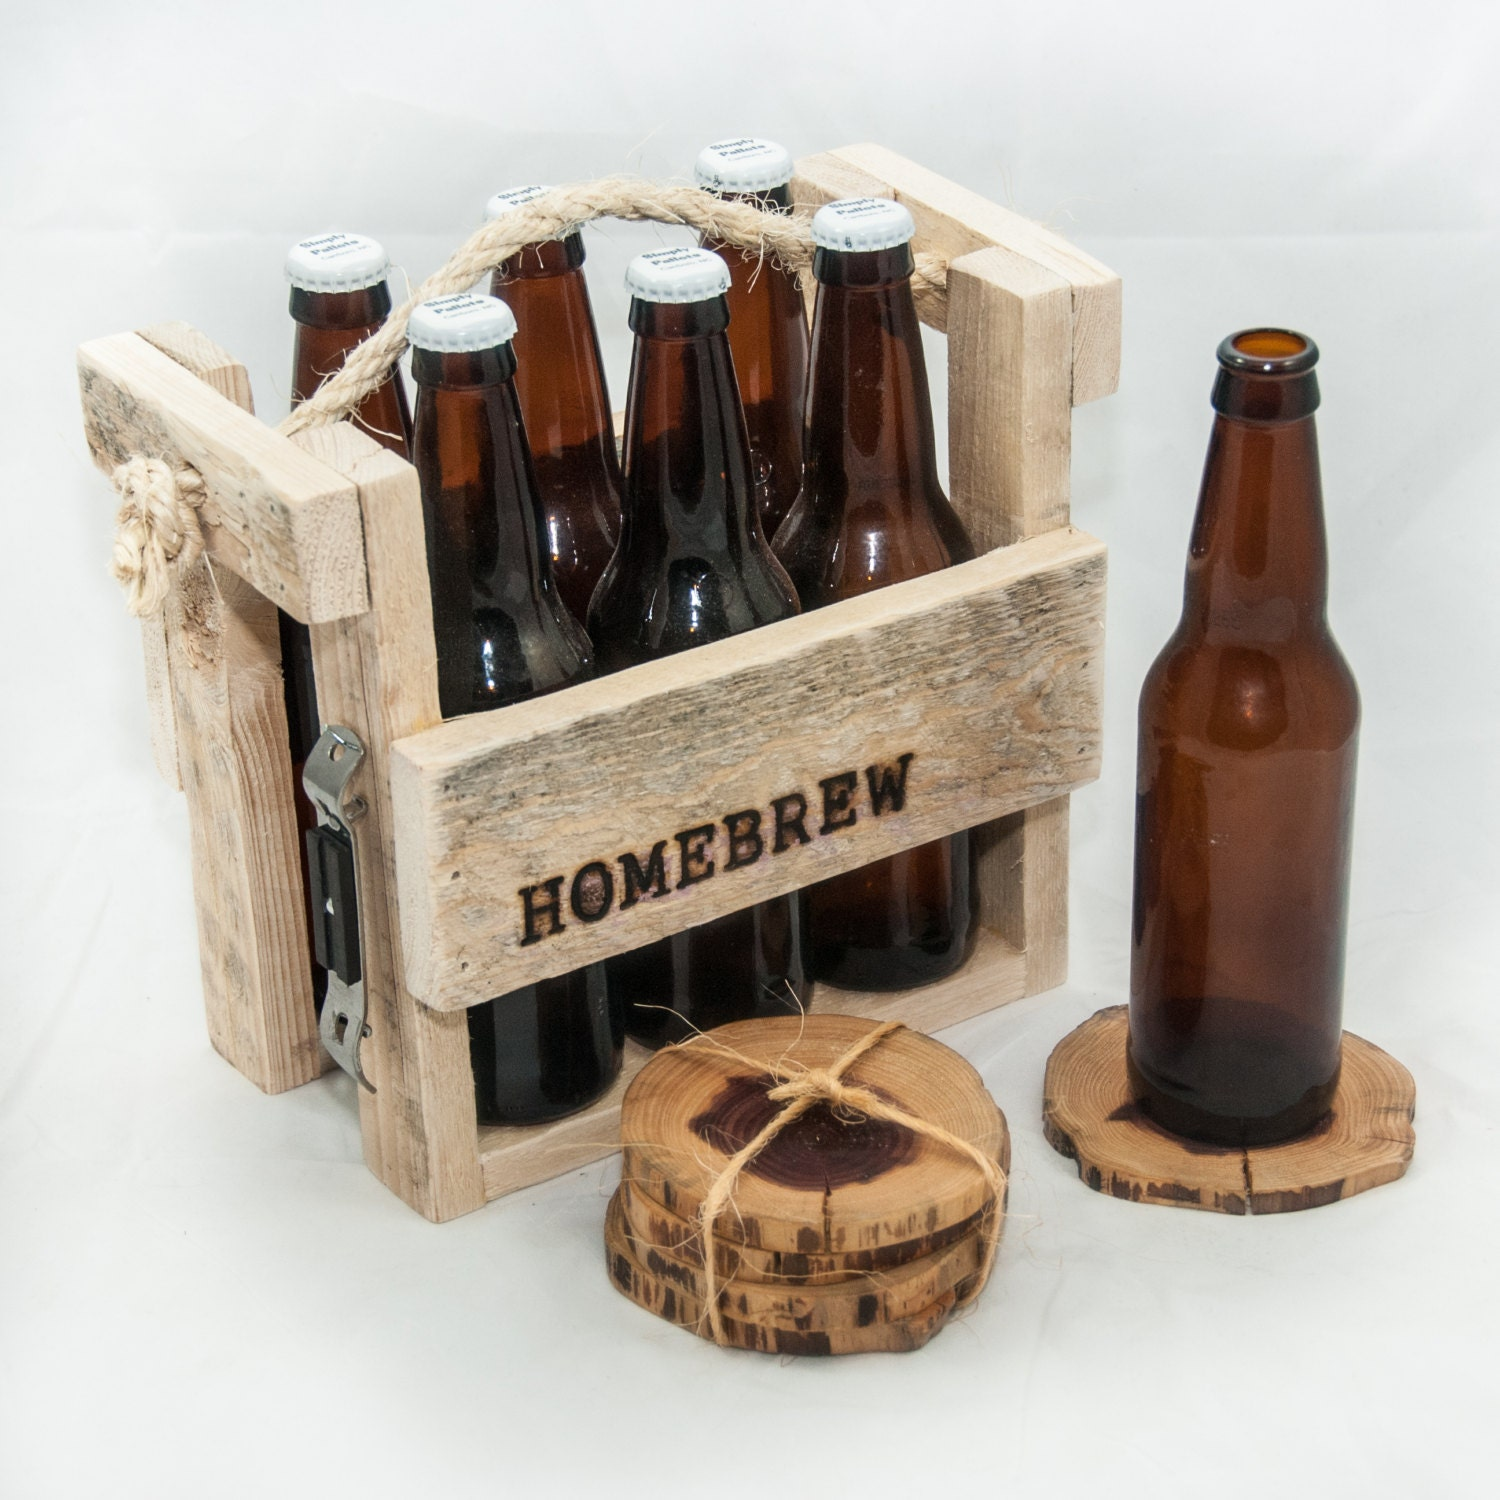 6 pack beer carrier template - father 39 s day gift handmade rustic 6 pack holder by